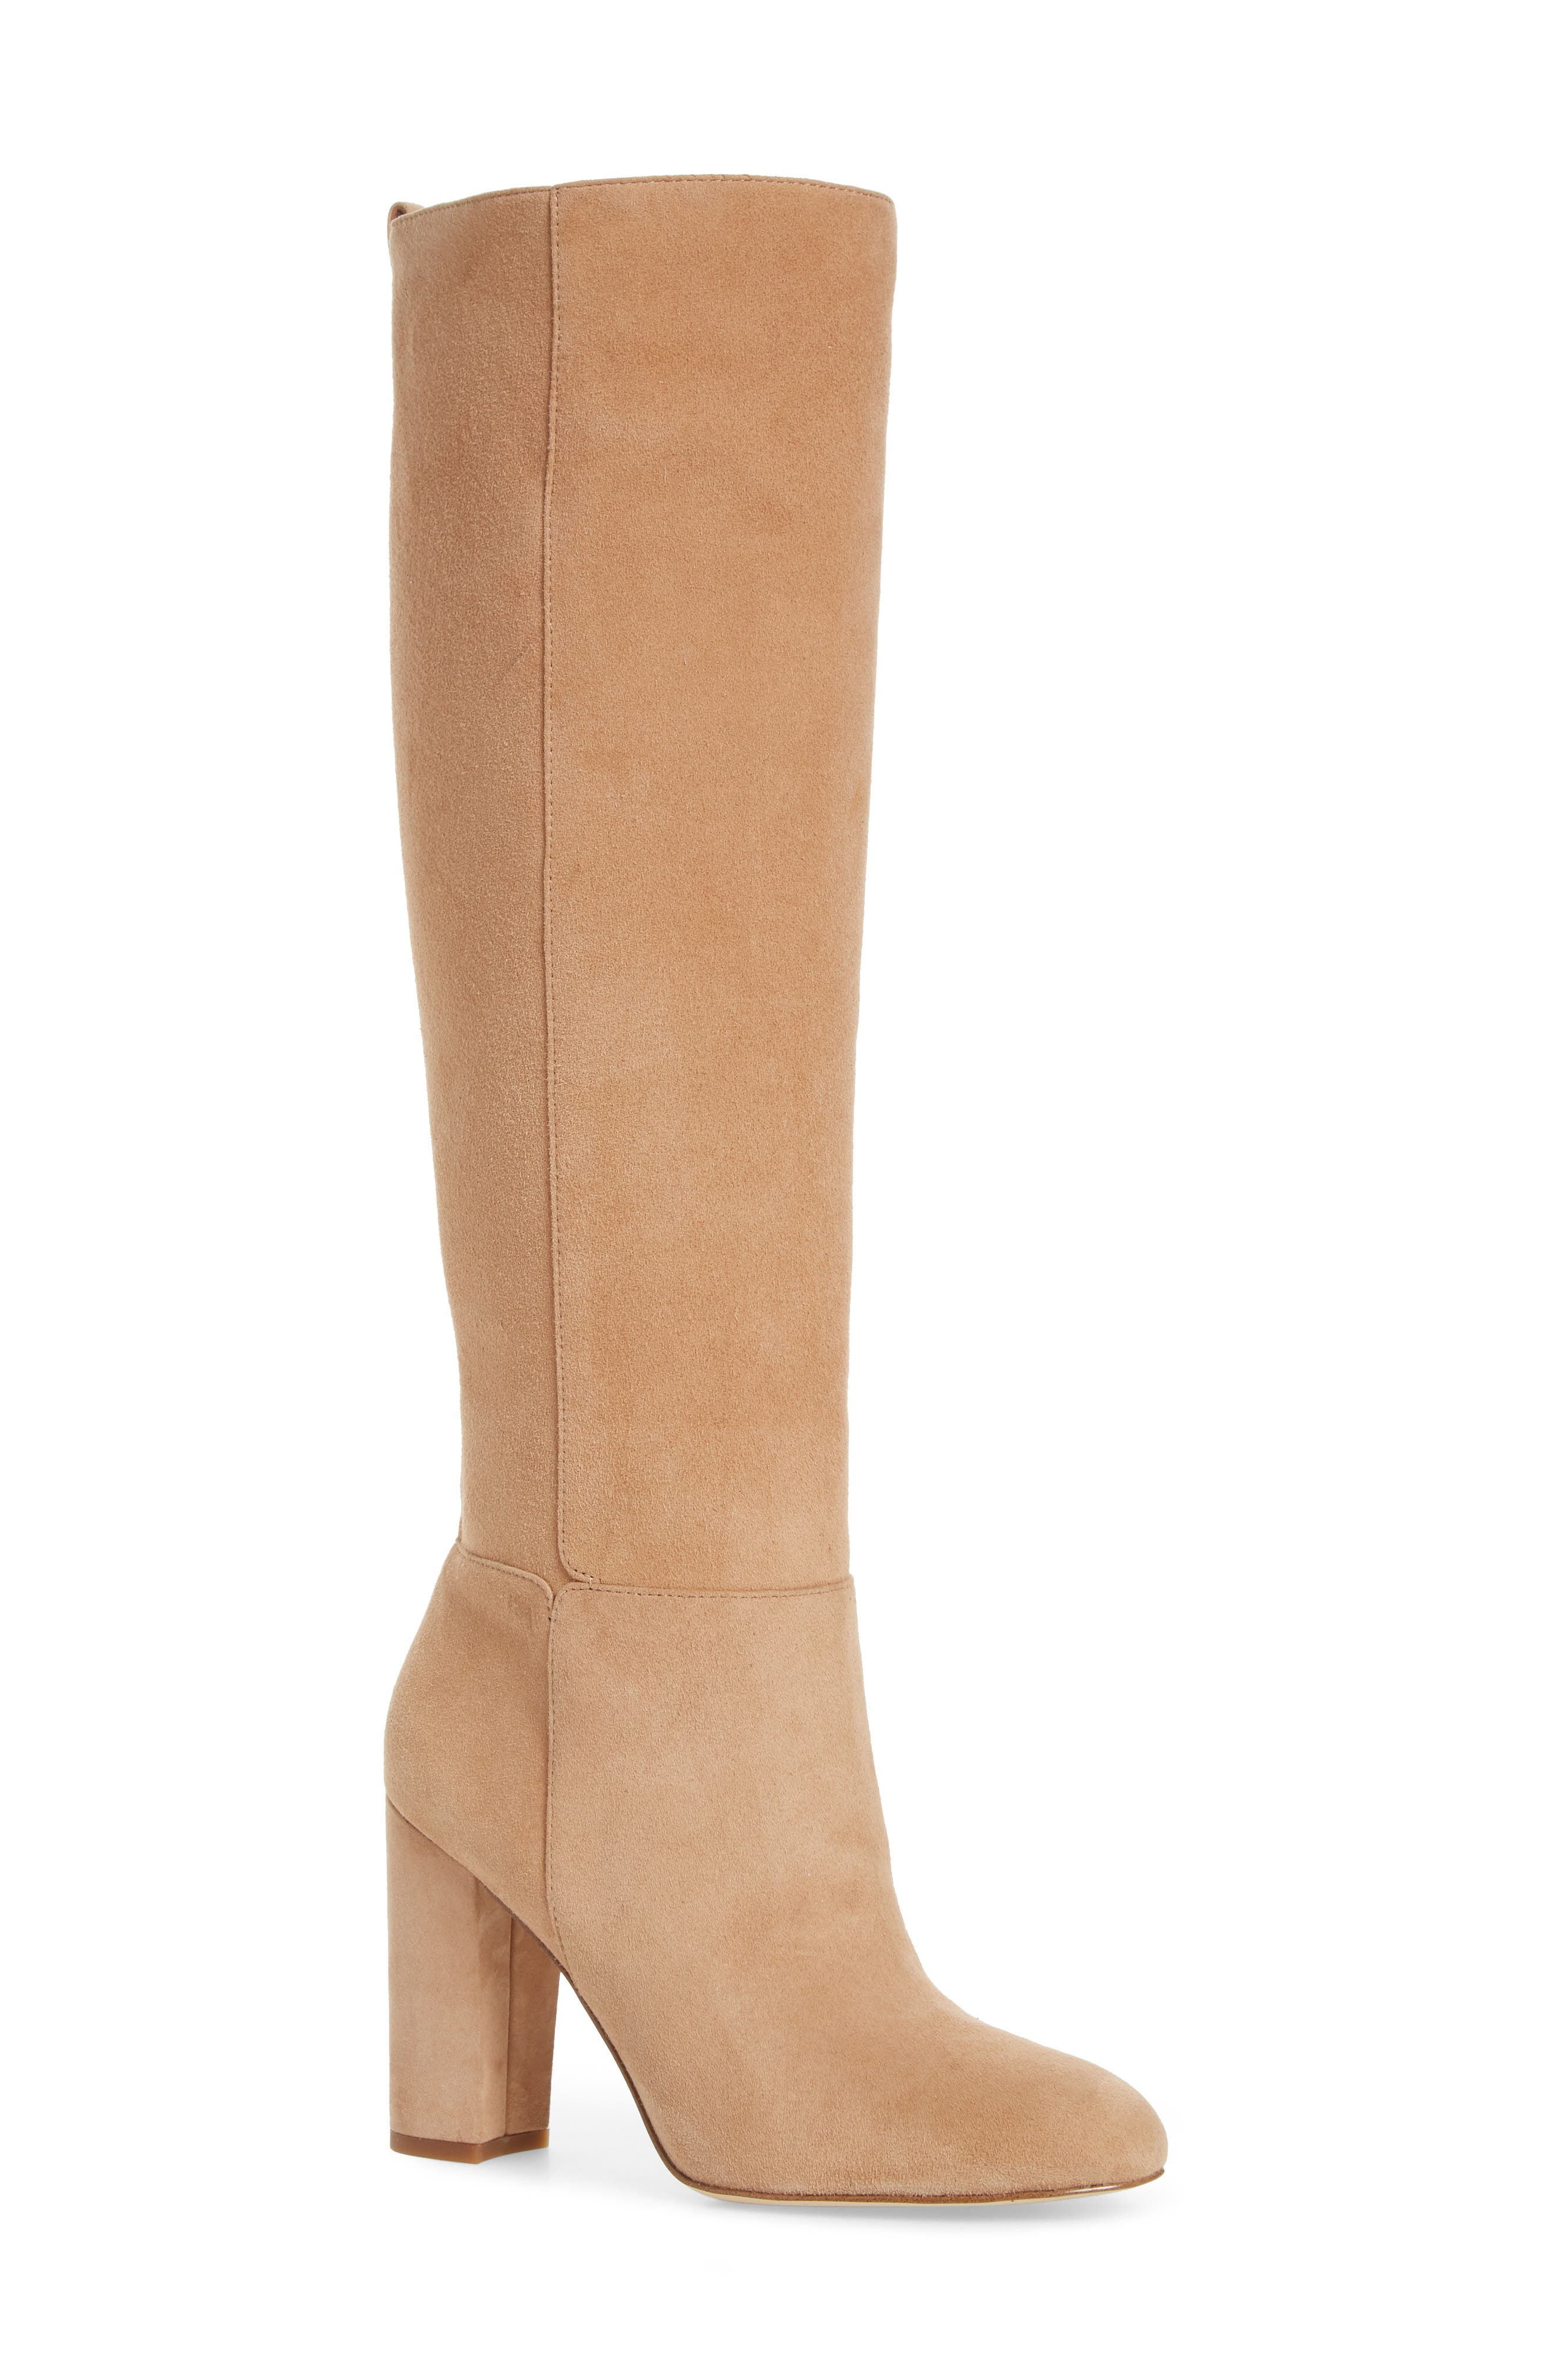 Sam Edelman Caprice Knee-High Boot, Beige